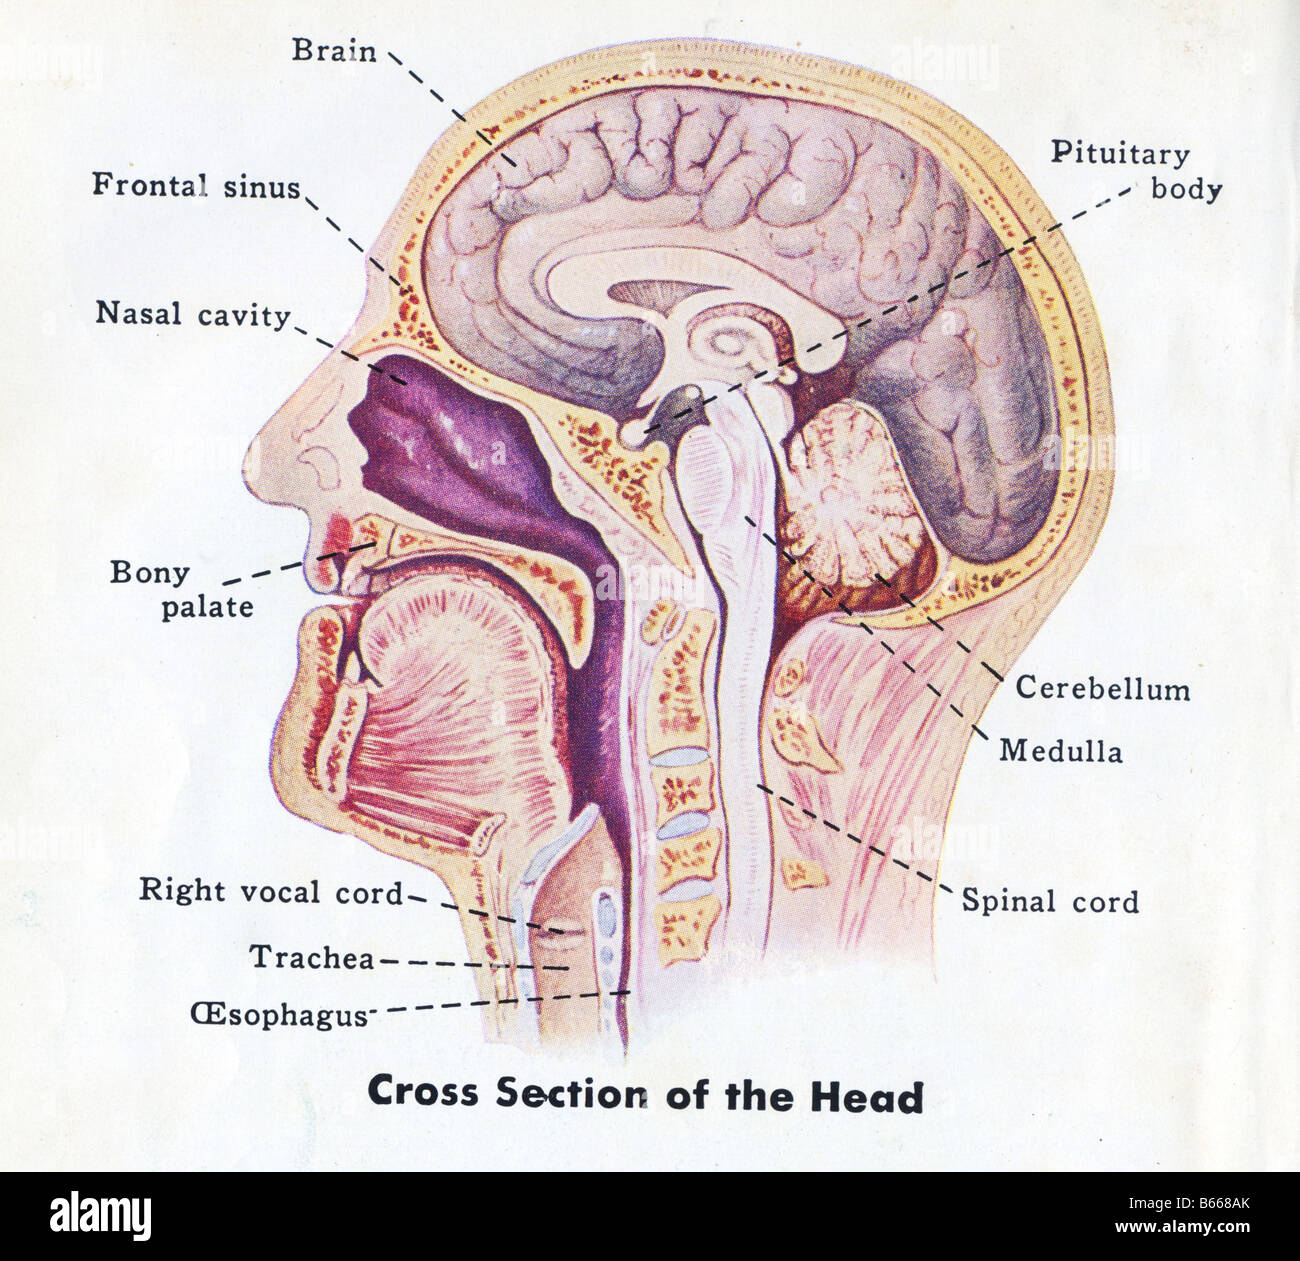 medical diagram of human head stock photo  royalty free image     medical diagram of human head